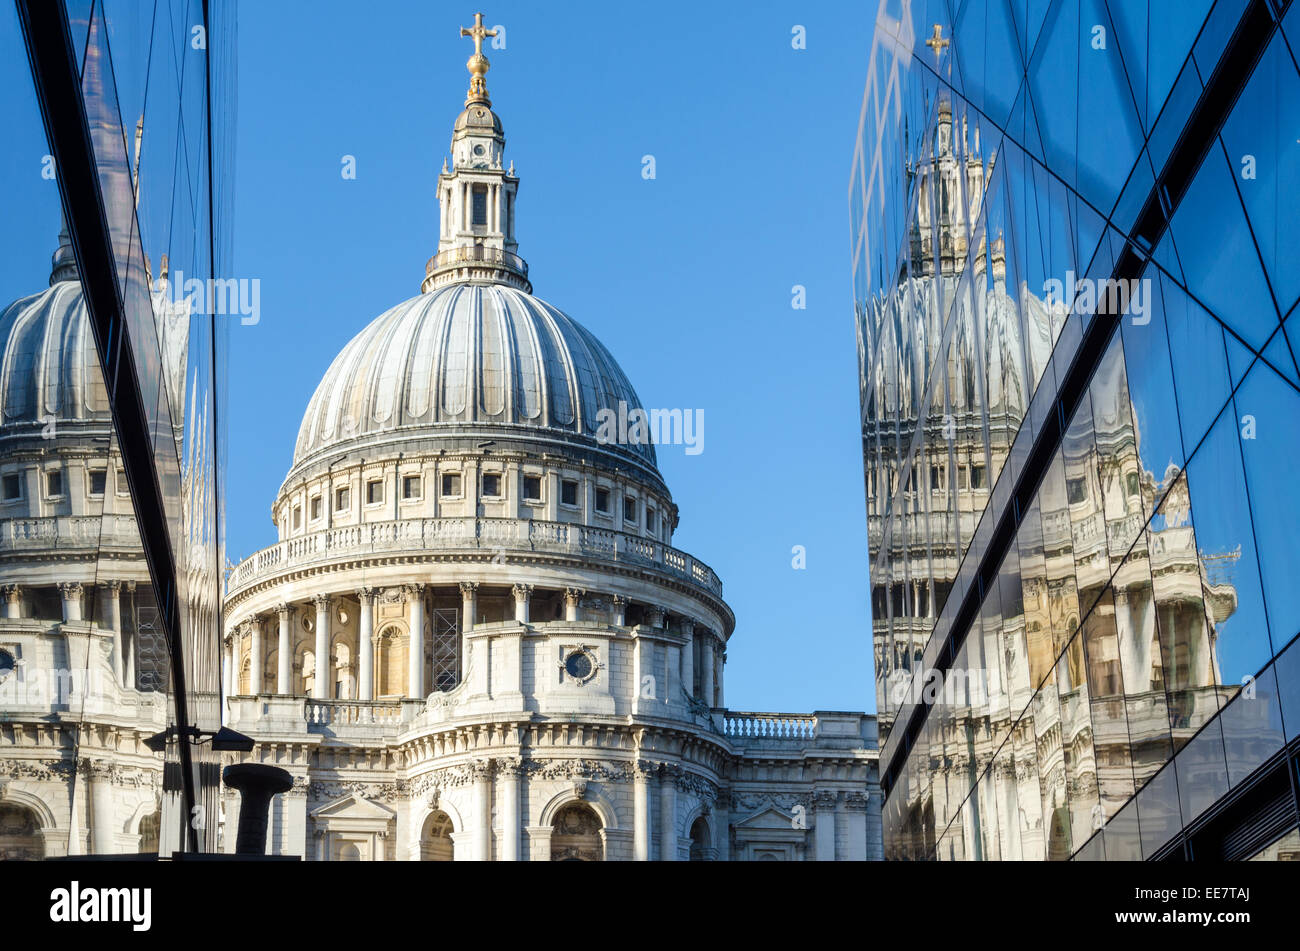 St Paul's Cathedral reflected in the glass of One New Change shopping centre. City of London, UK Stock Photo